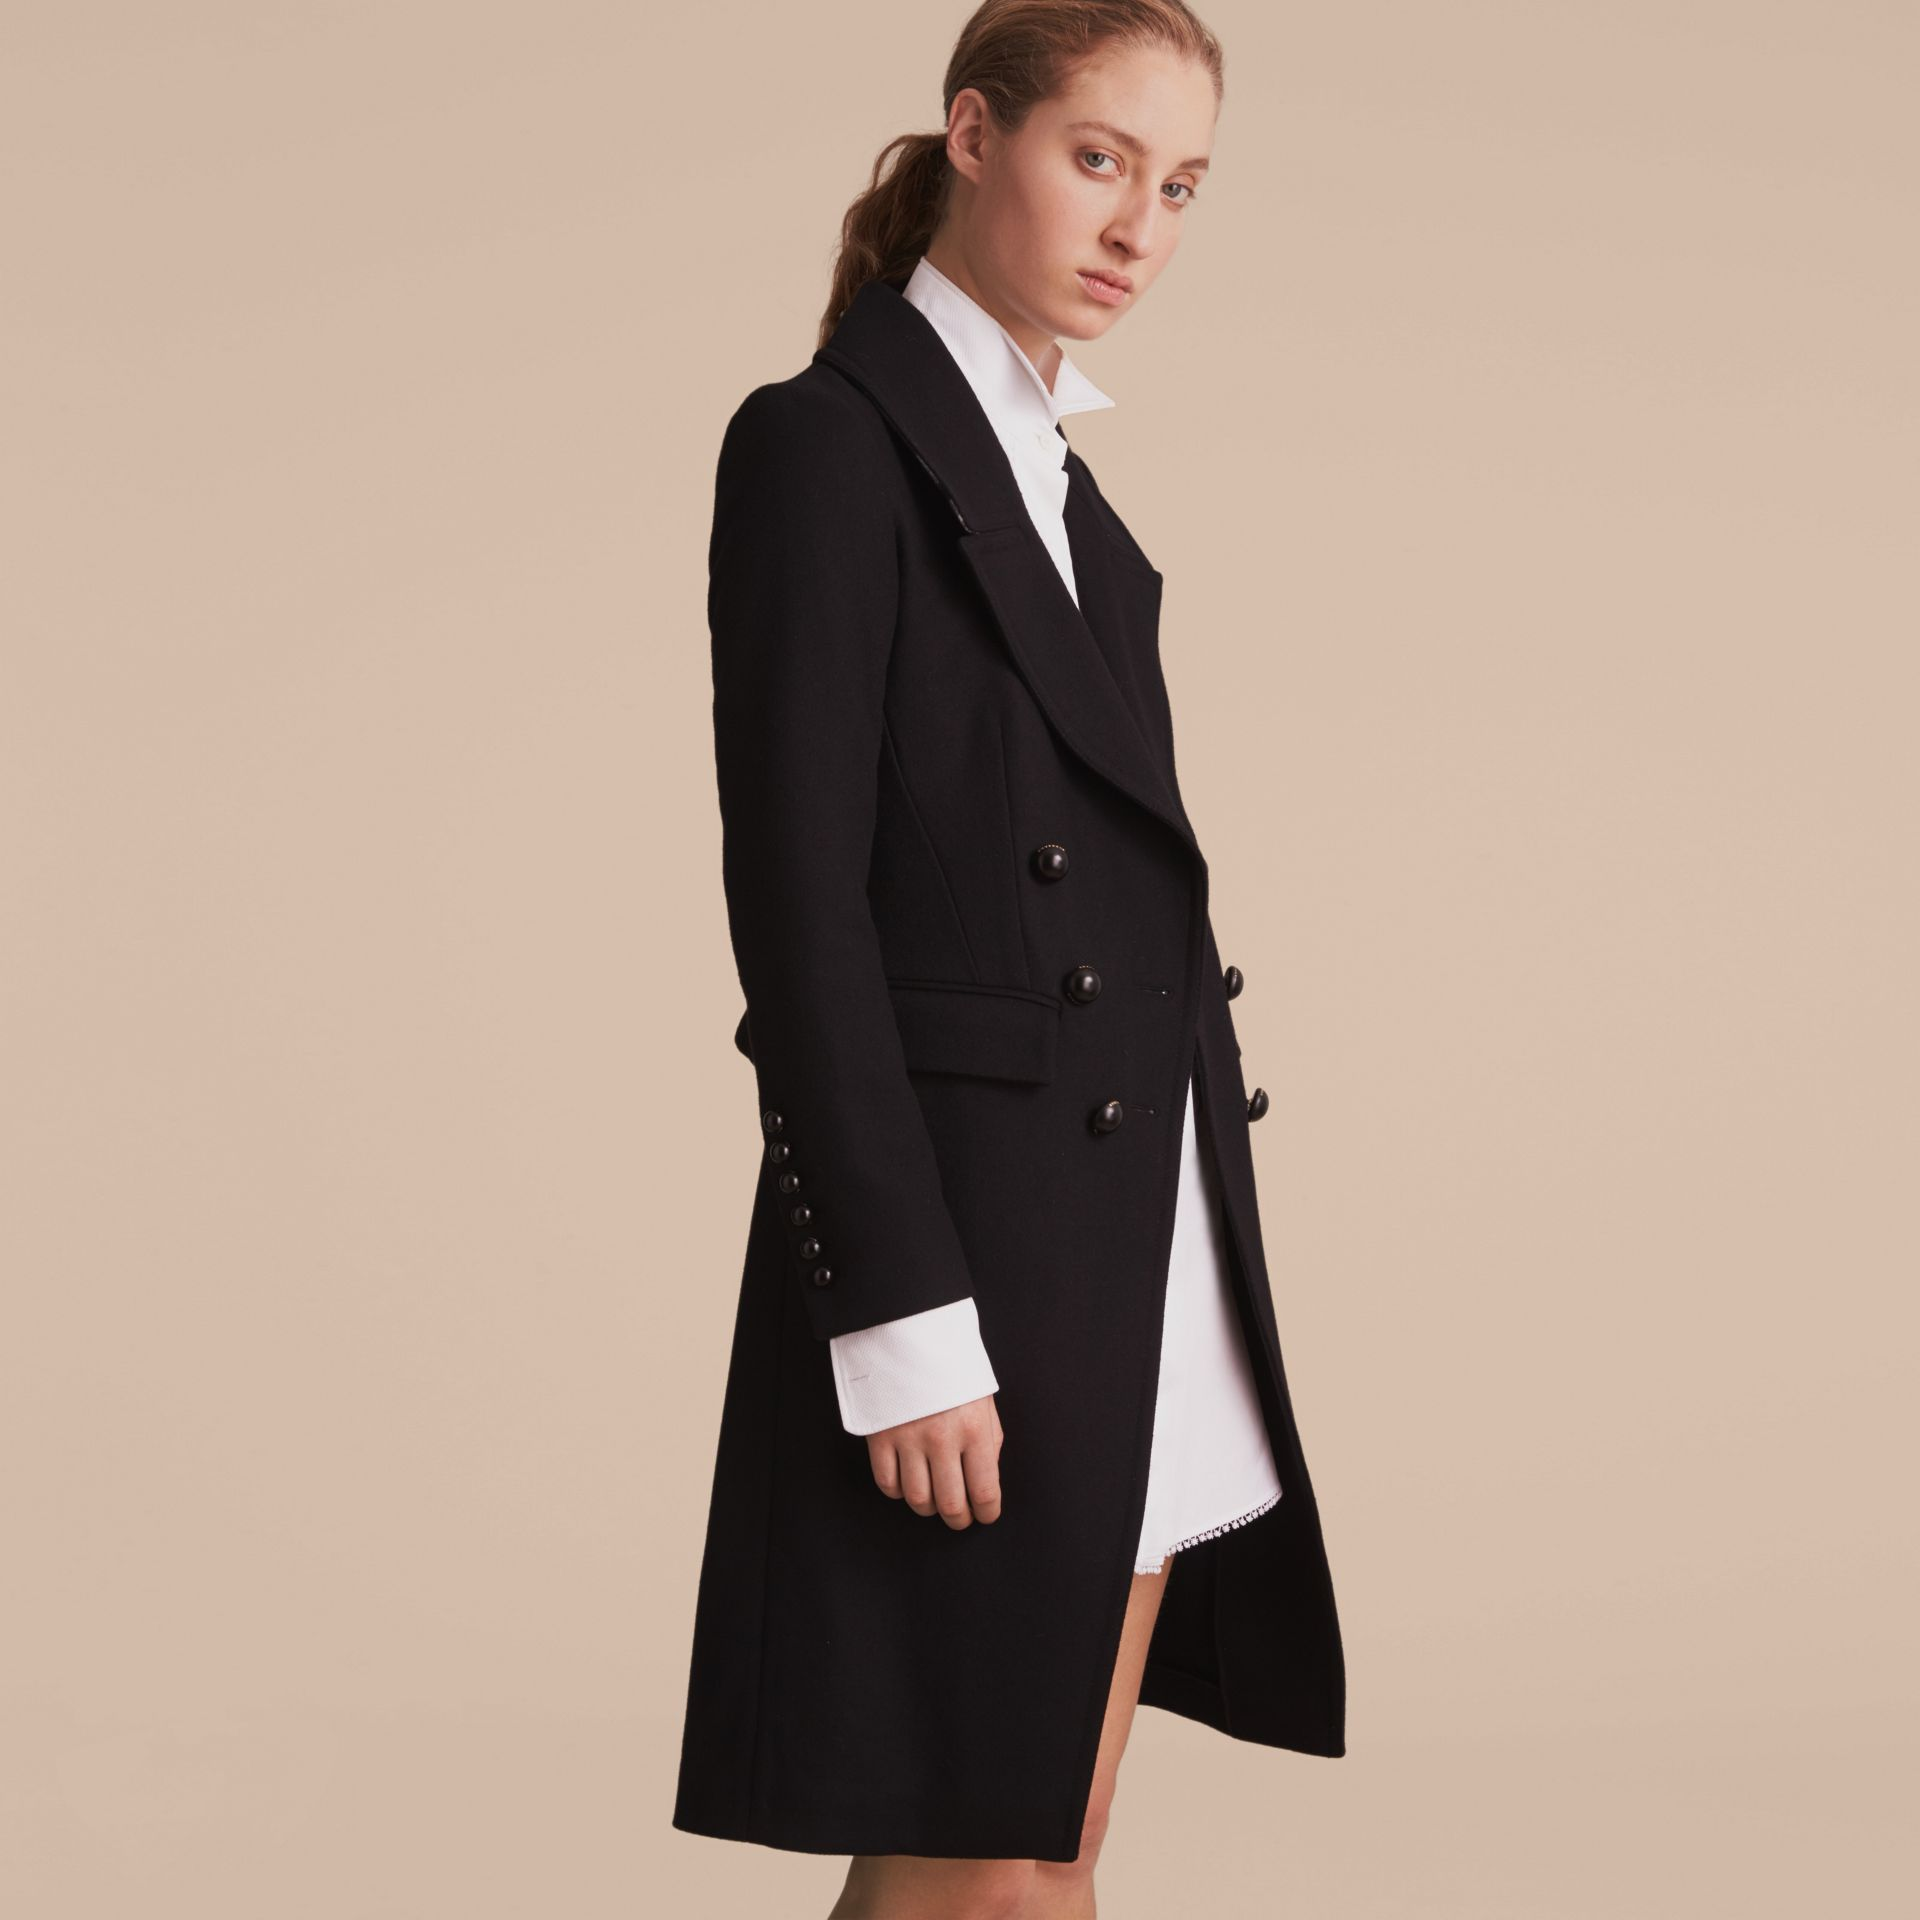 Wool Blend Double-breasted Coat in Black - Women | Burberry Canada - gallery image 7